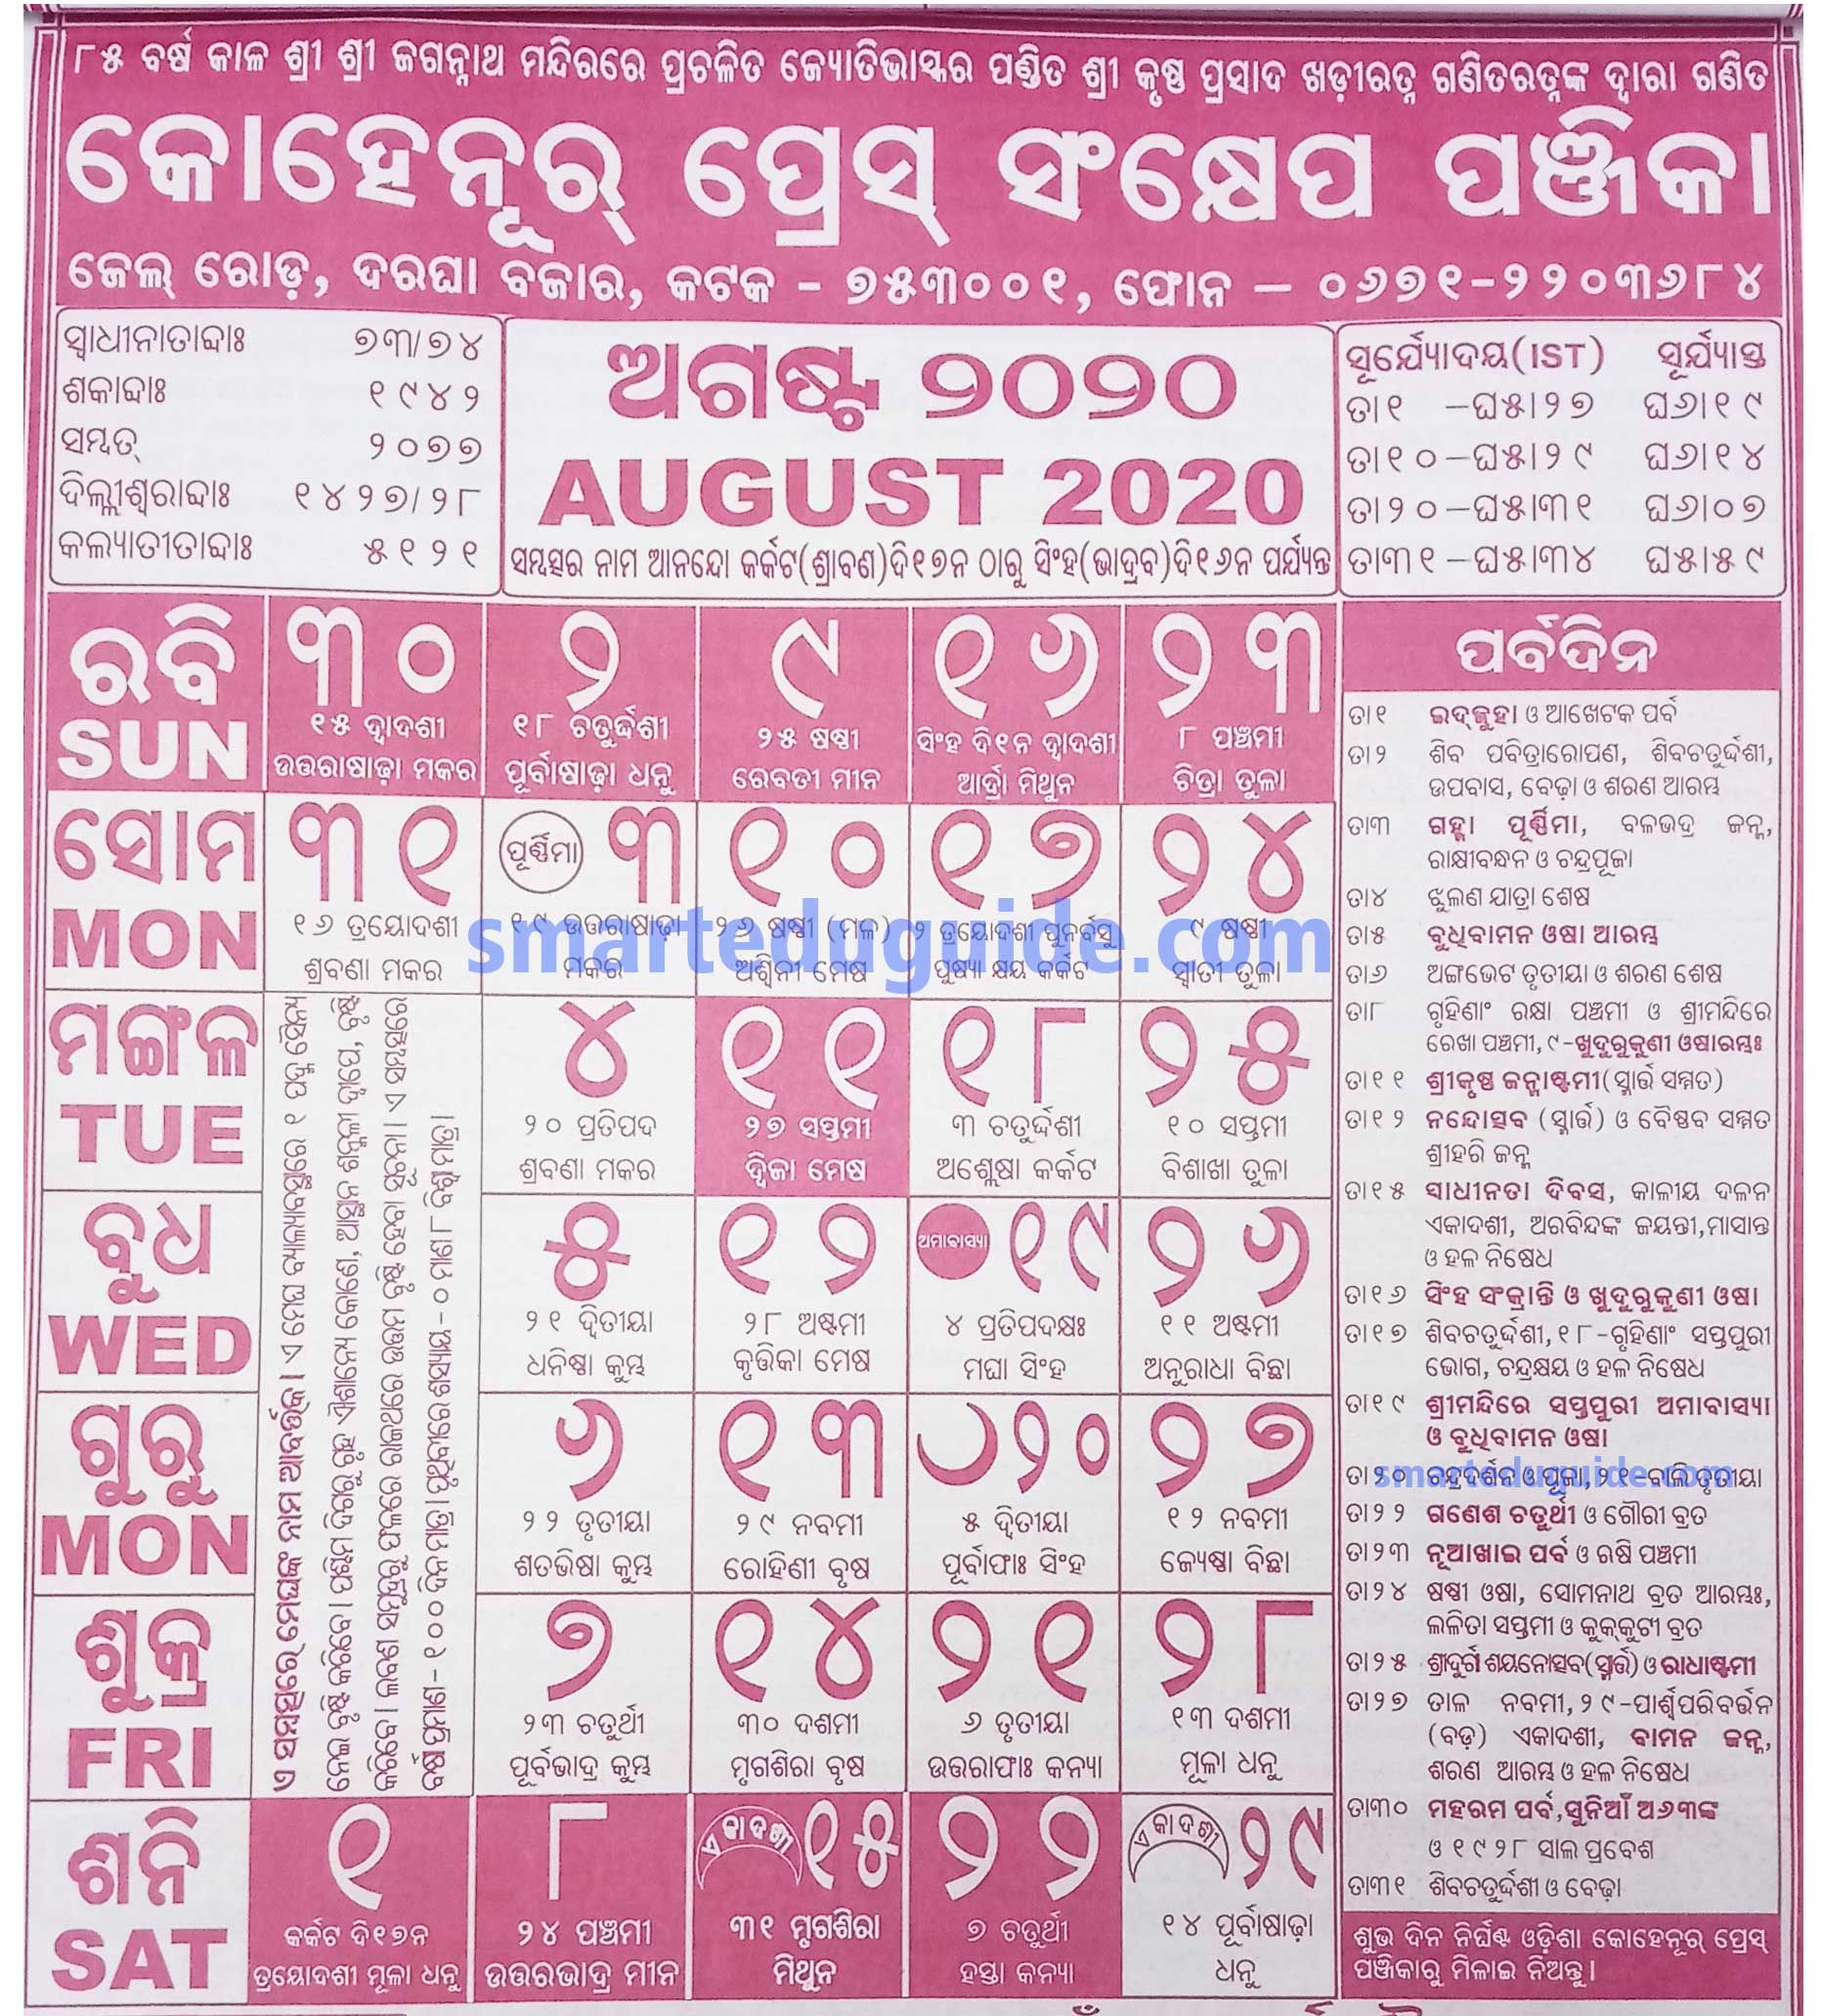 Free Download Pdf | Odishain for Odia Calendar February 2020